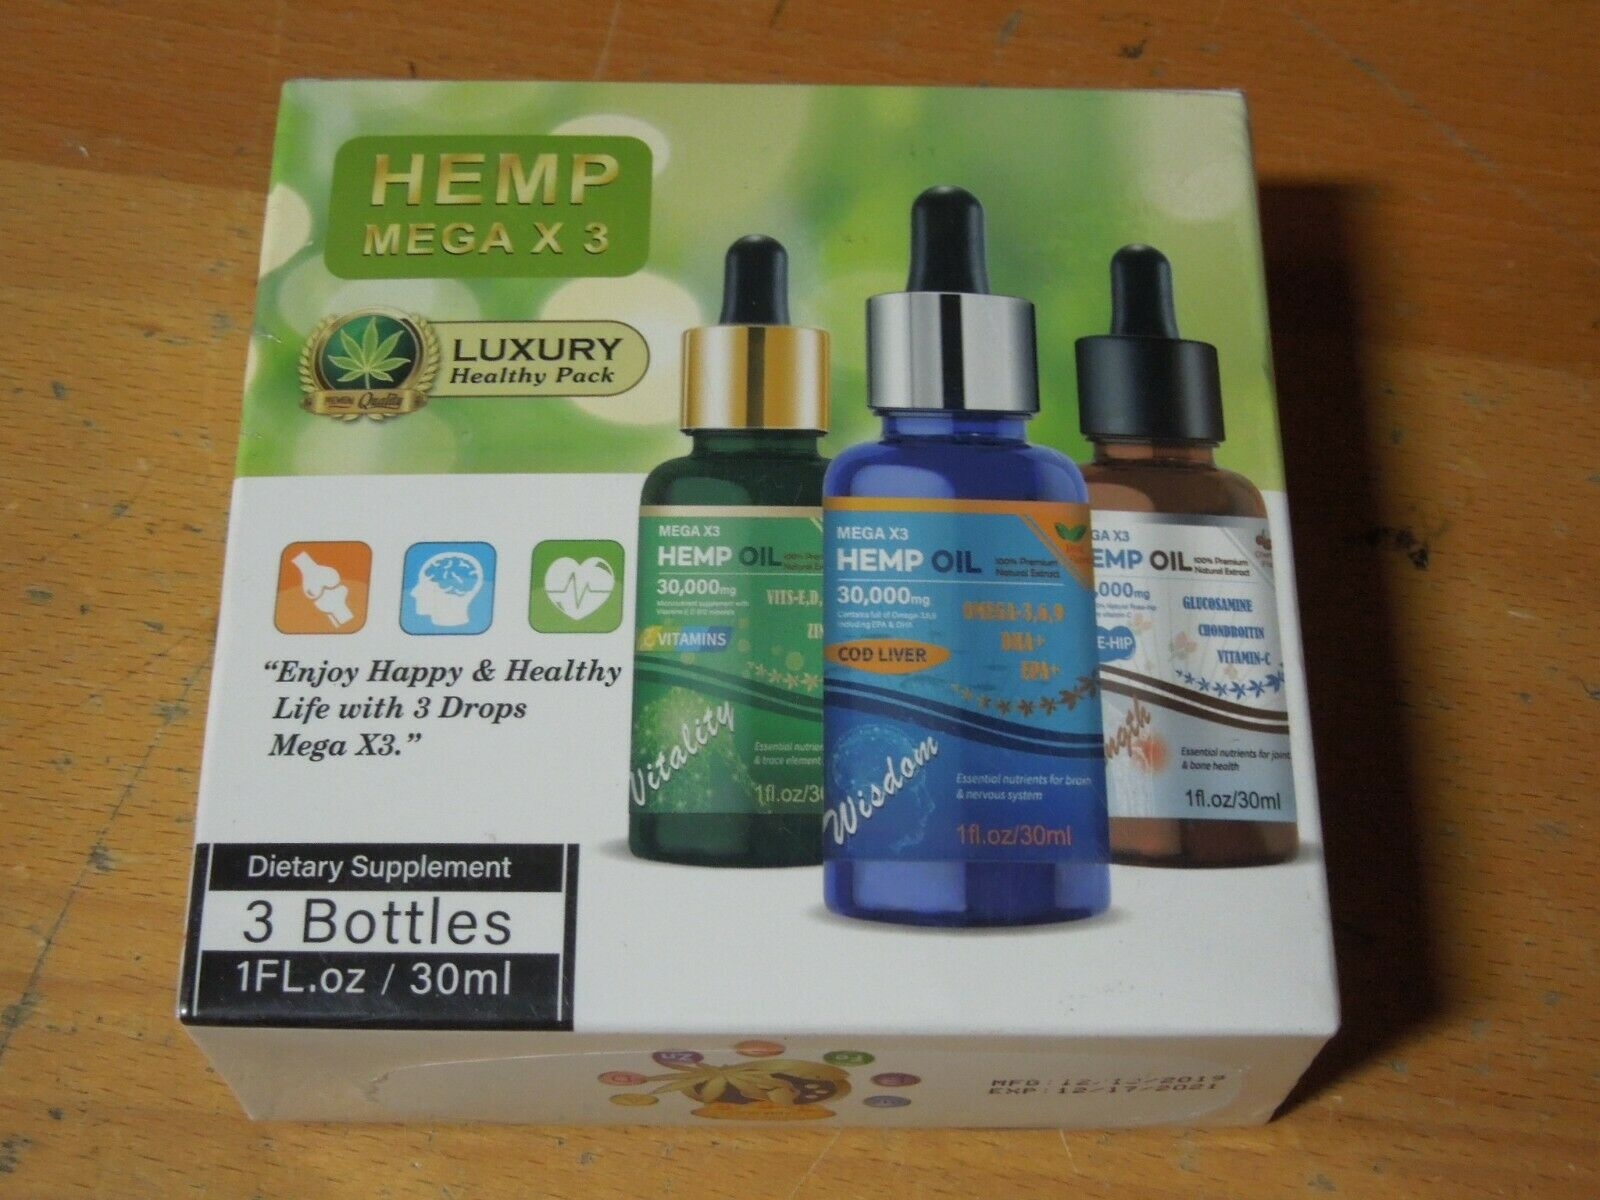 3 Bottles Hemp Mega X 3  Oil 30000mg Anxiety and Mood Support Dietary Supplement